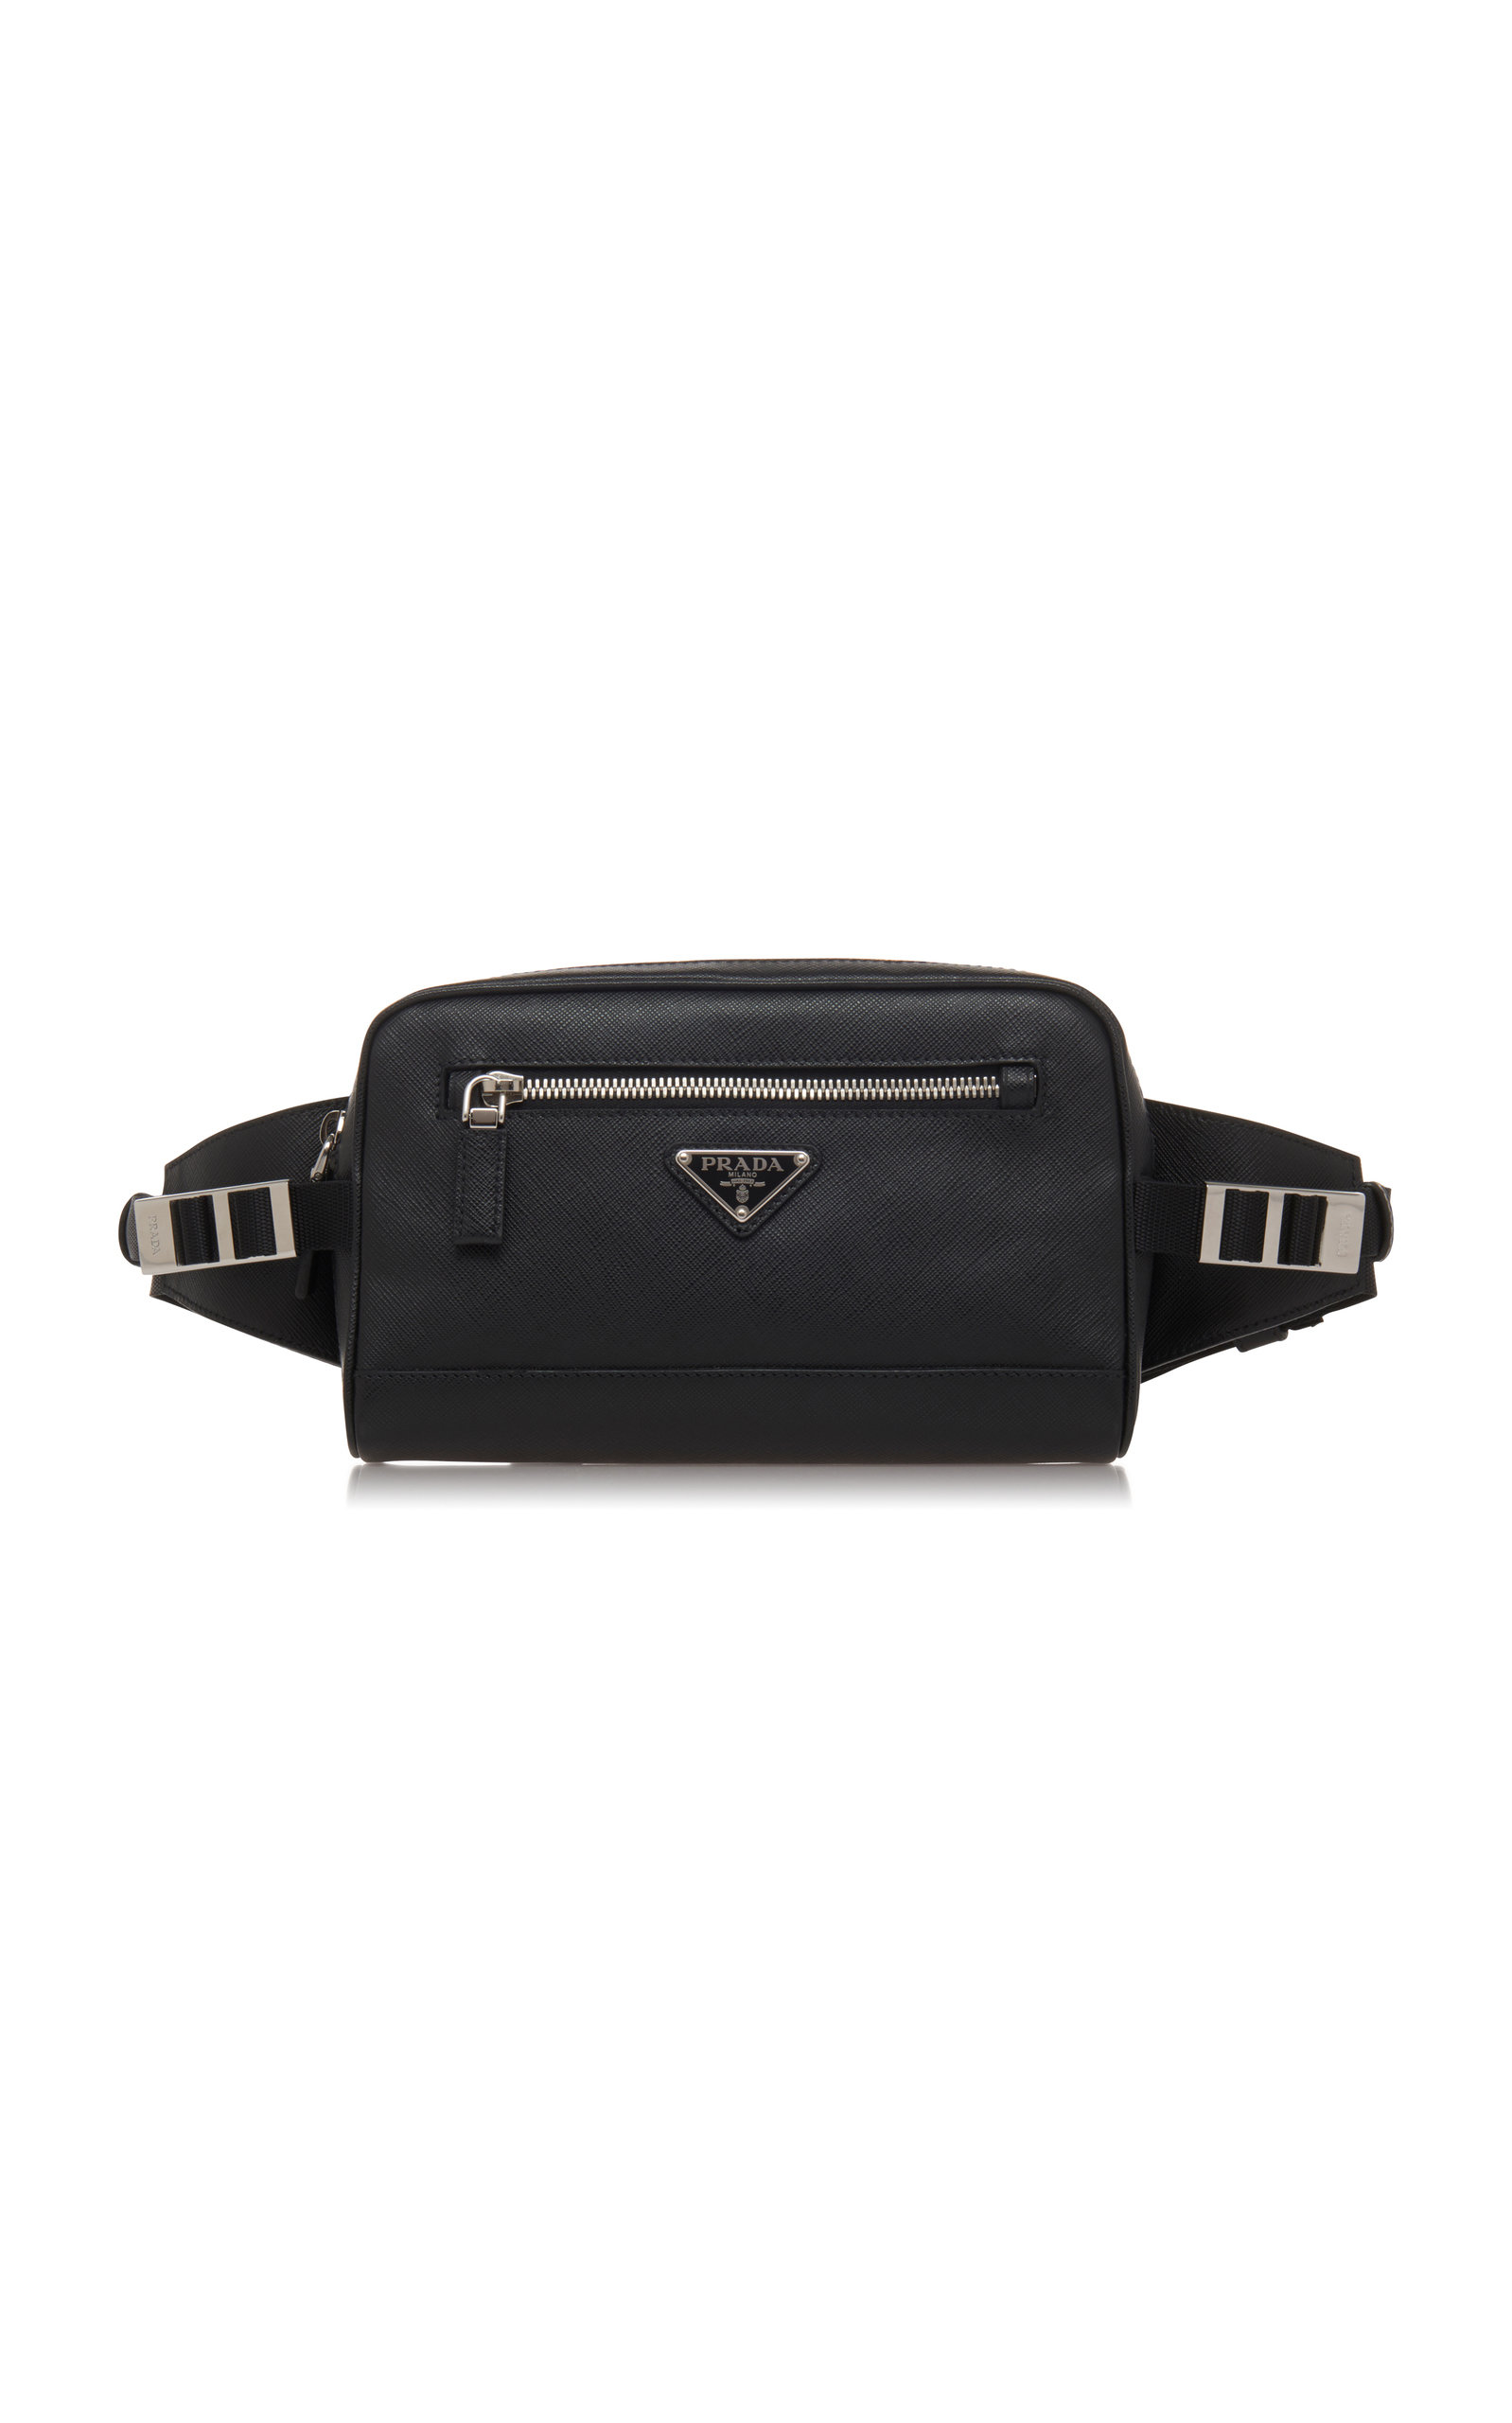 d627b9e9221b Black Leather Hip Bag With Nylon Waistband by Prada | Moda Operandi